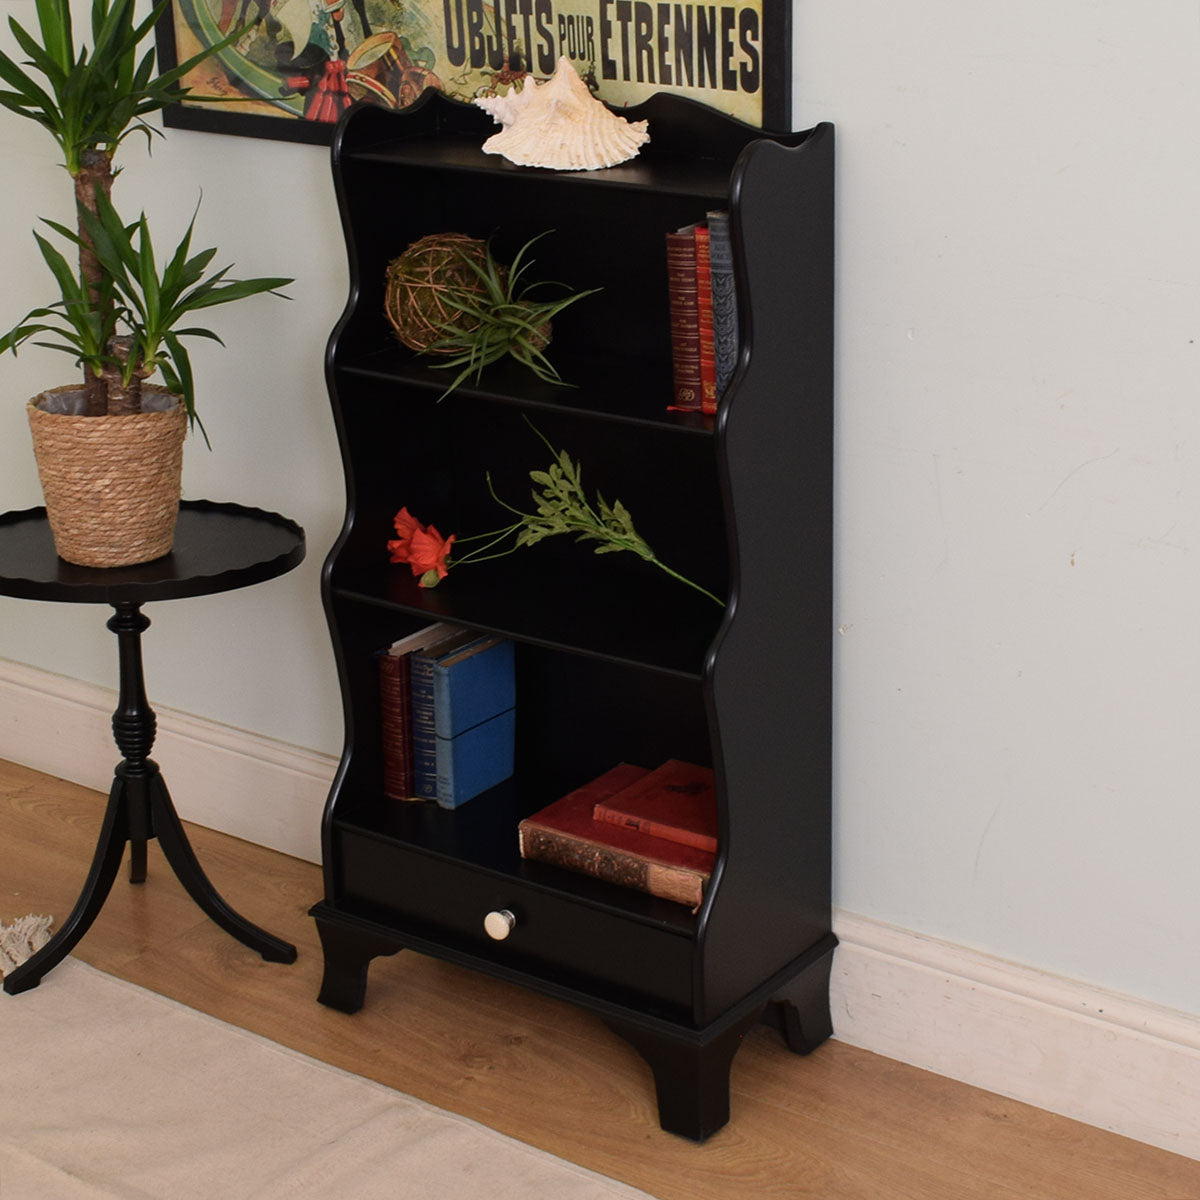 Painted Waterfall bookcase